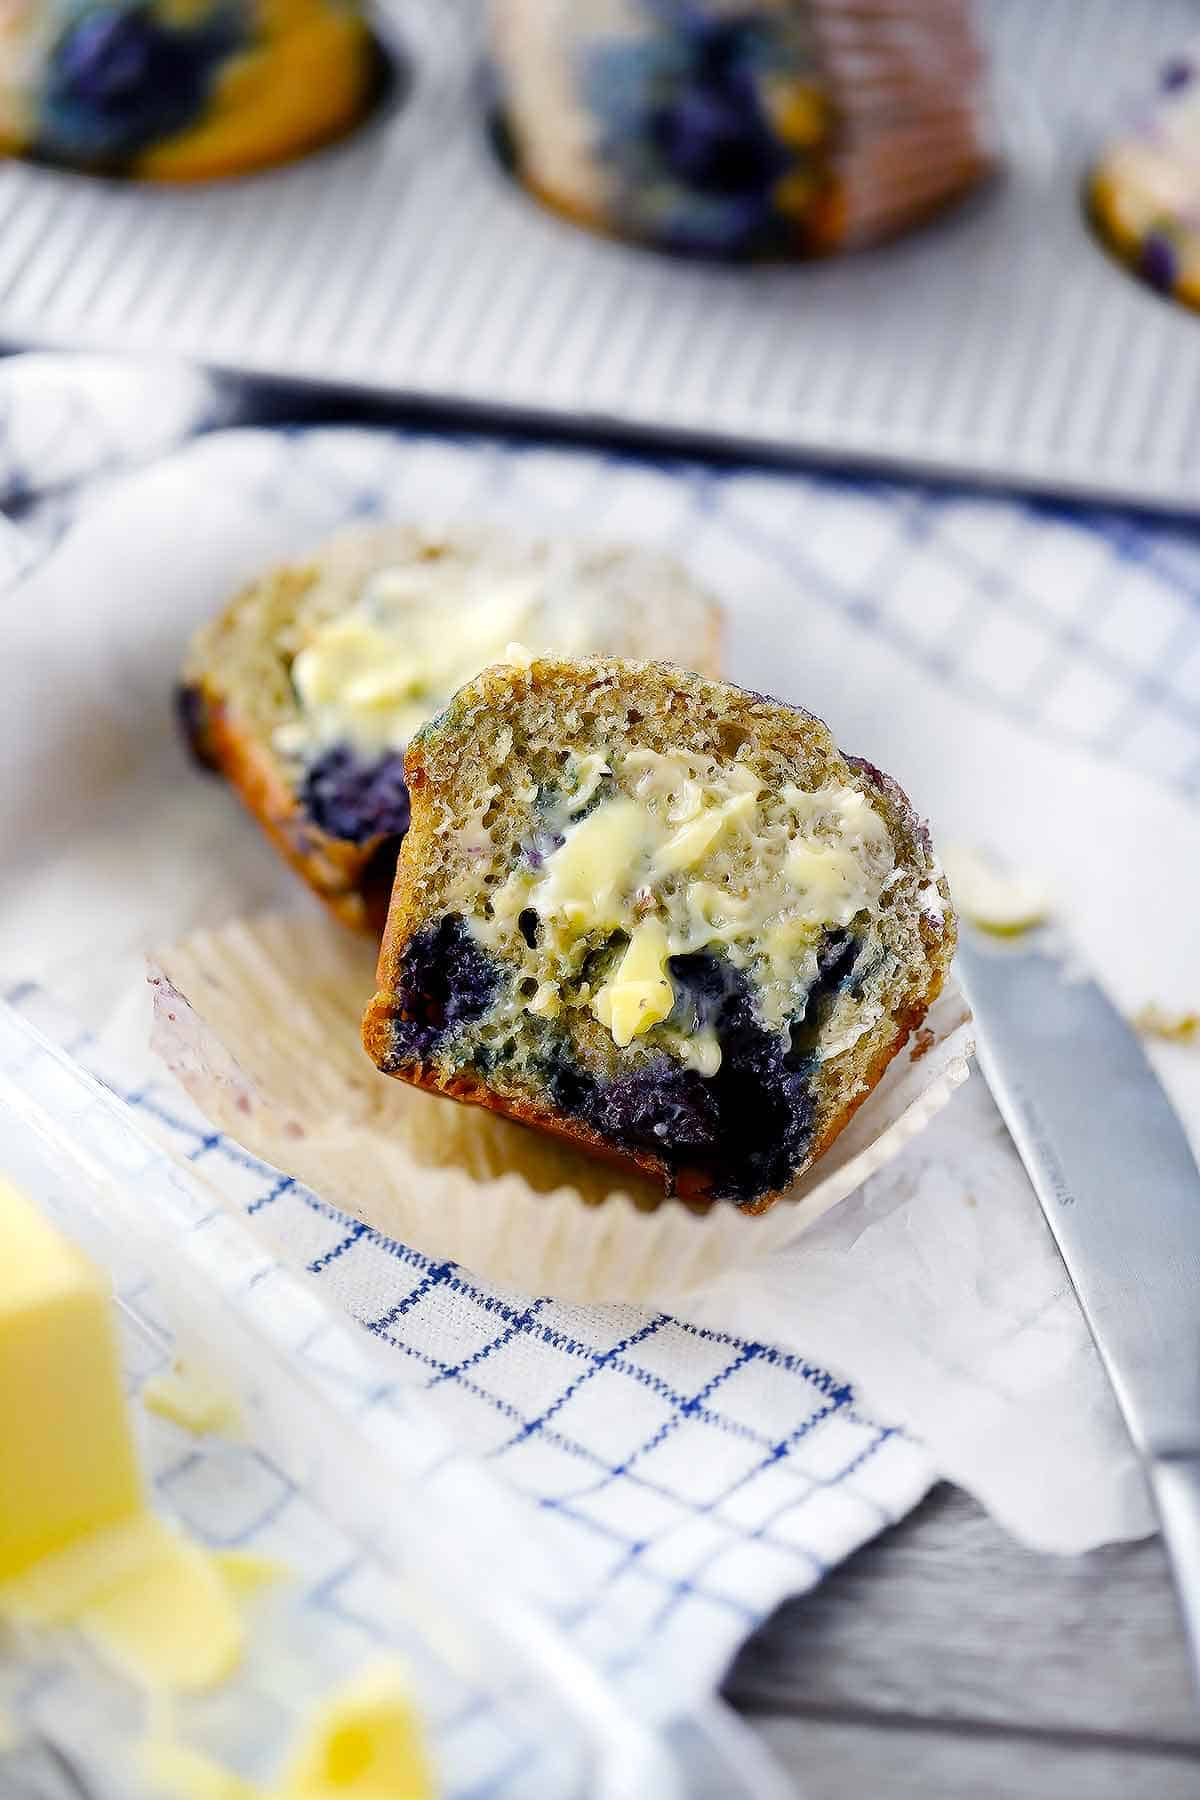 Blueberry muffin sliced in half with butter on it.